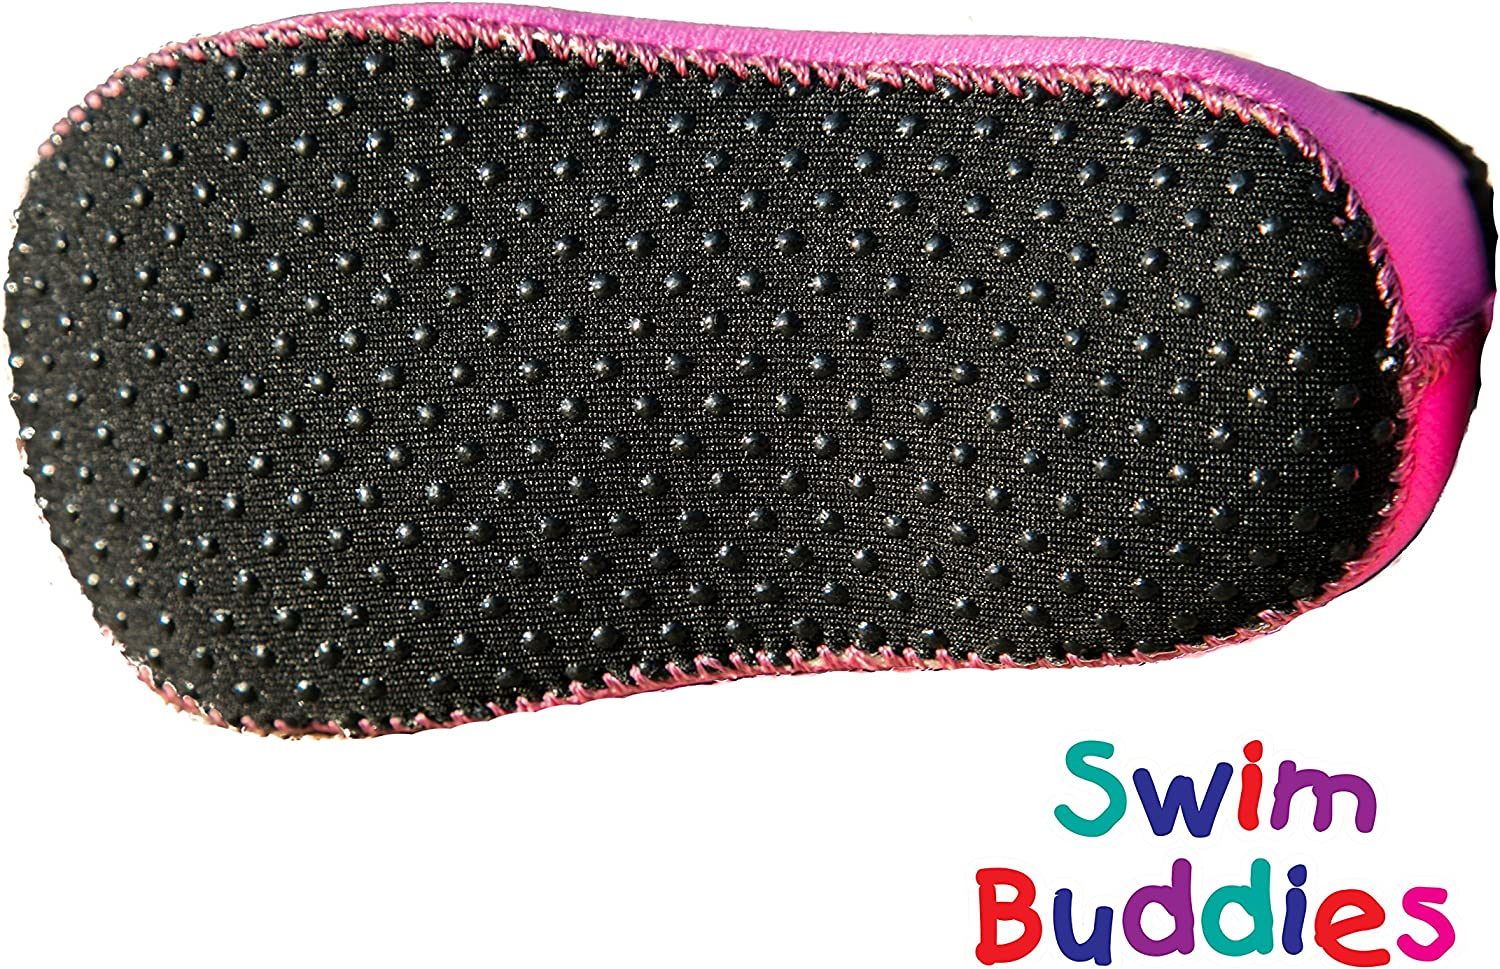 Lightweight /& Comfortable Swimming Shoes The Best Water Shoes for Beach Swim Buddies Baby Swim Shoes Lake Toddler Aqua Socks Pool